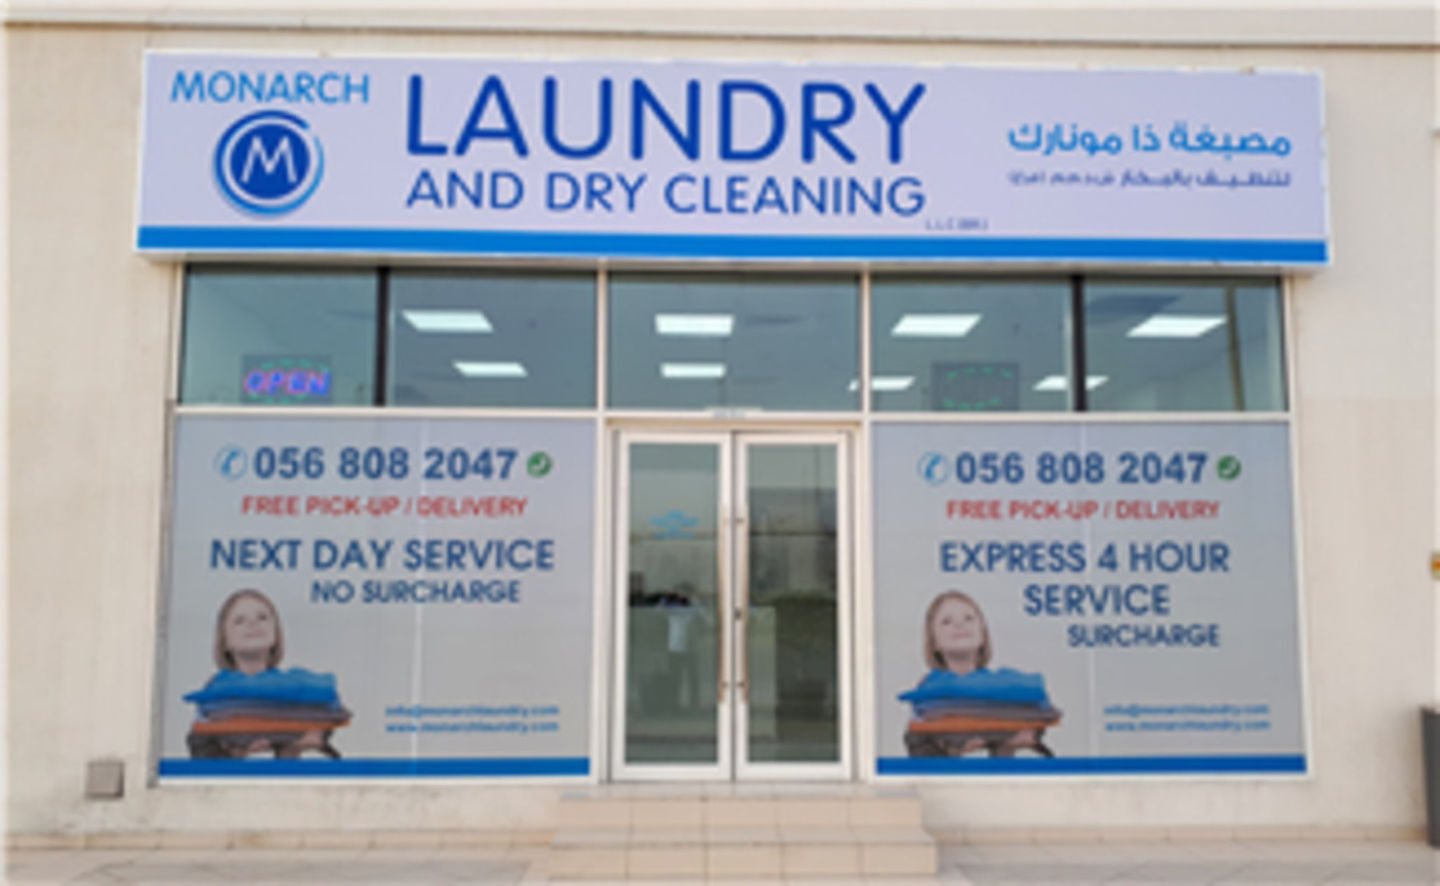 HiDubai-business-the-monarch-laundry-dry-cleaning-home-laundry-business-bay-dubai